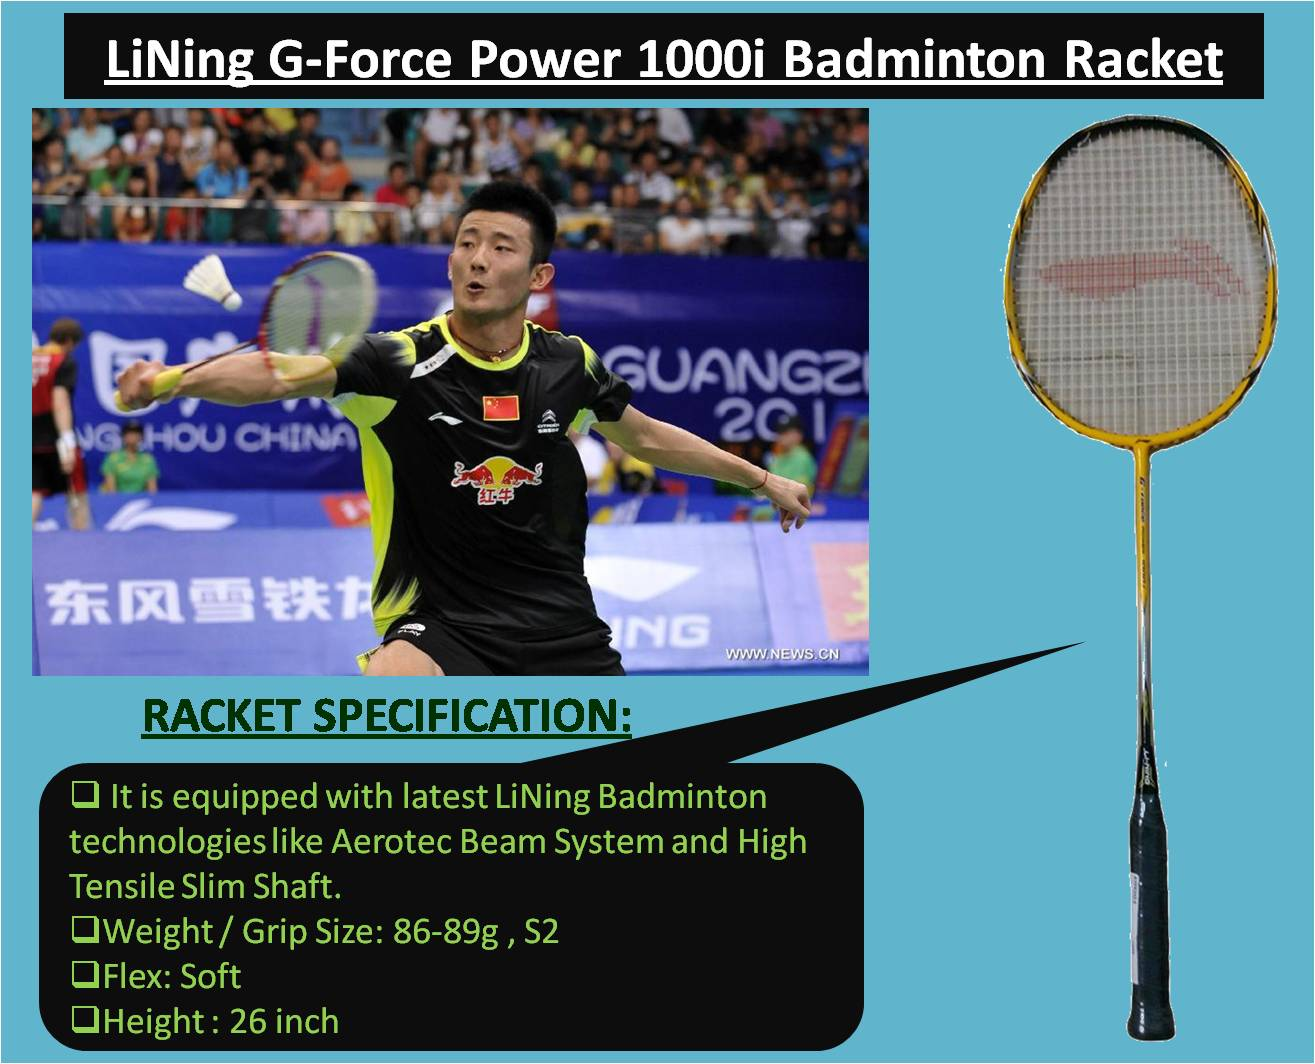 LiNing G-Force Power 1000i Badminton Racket